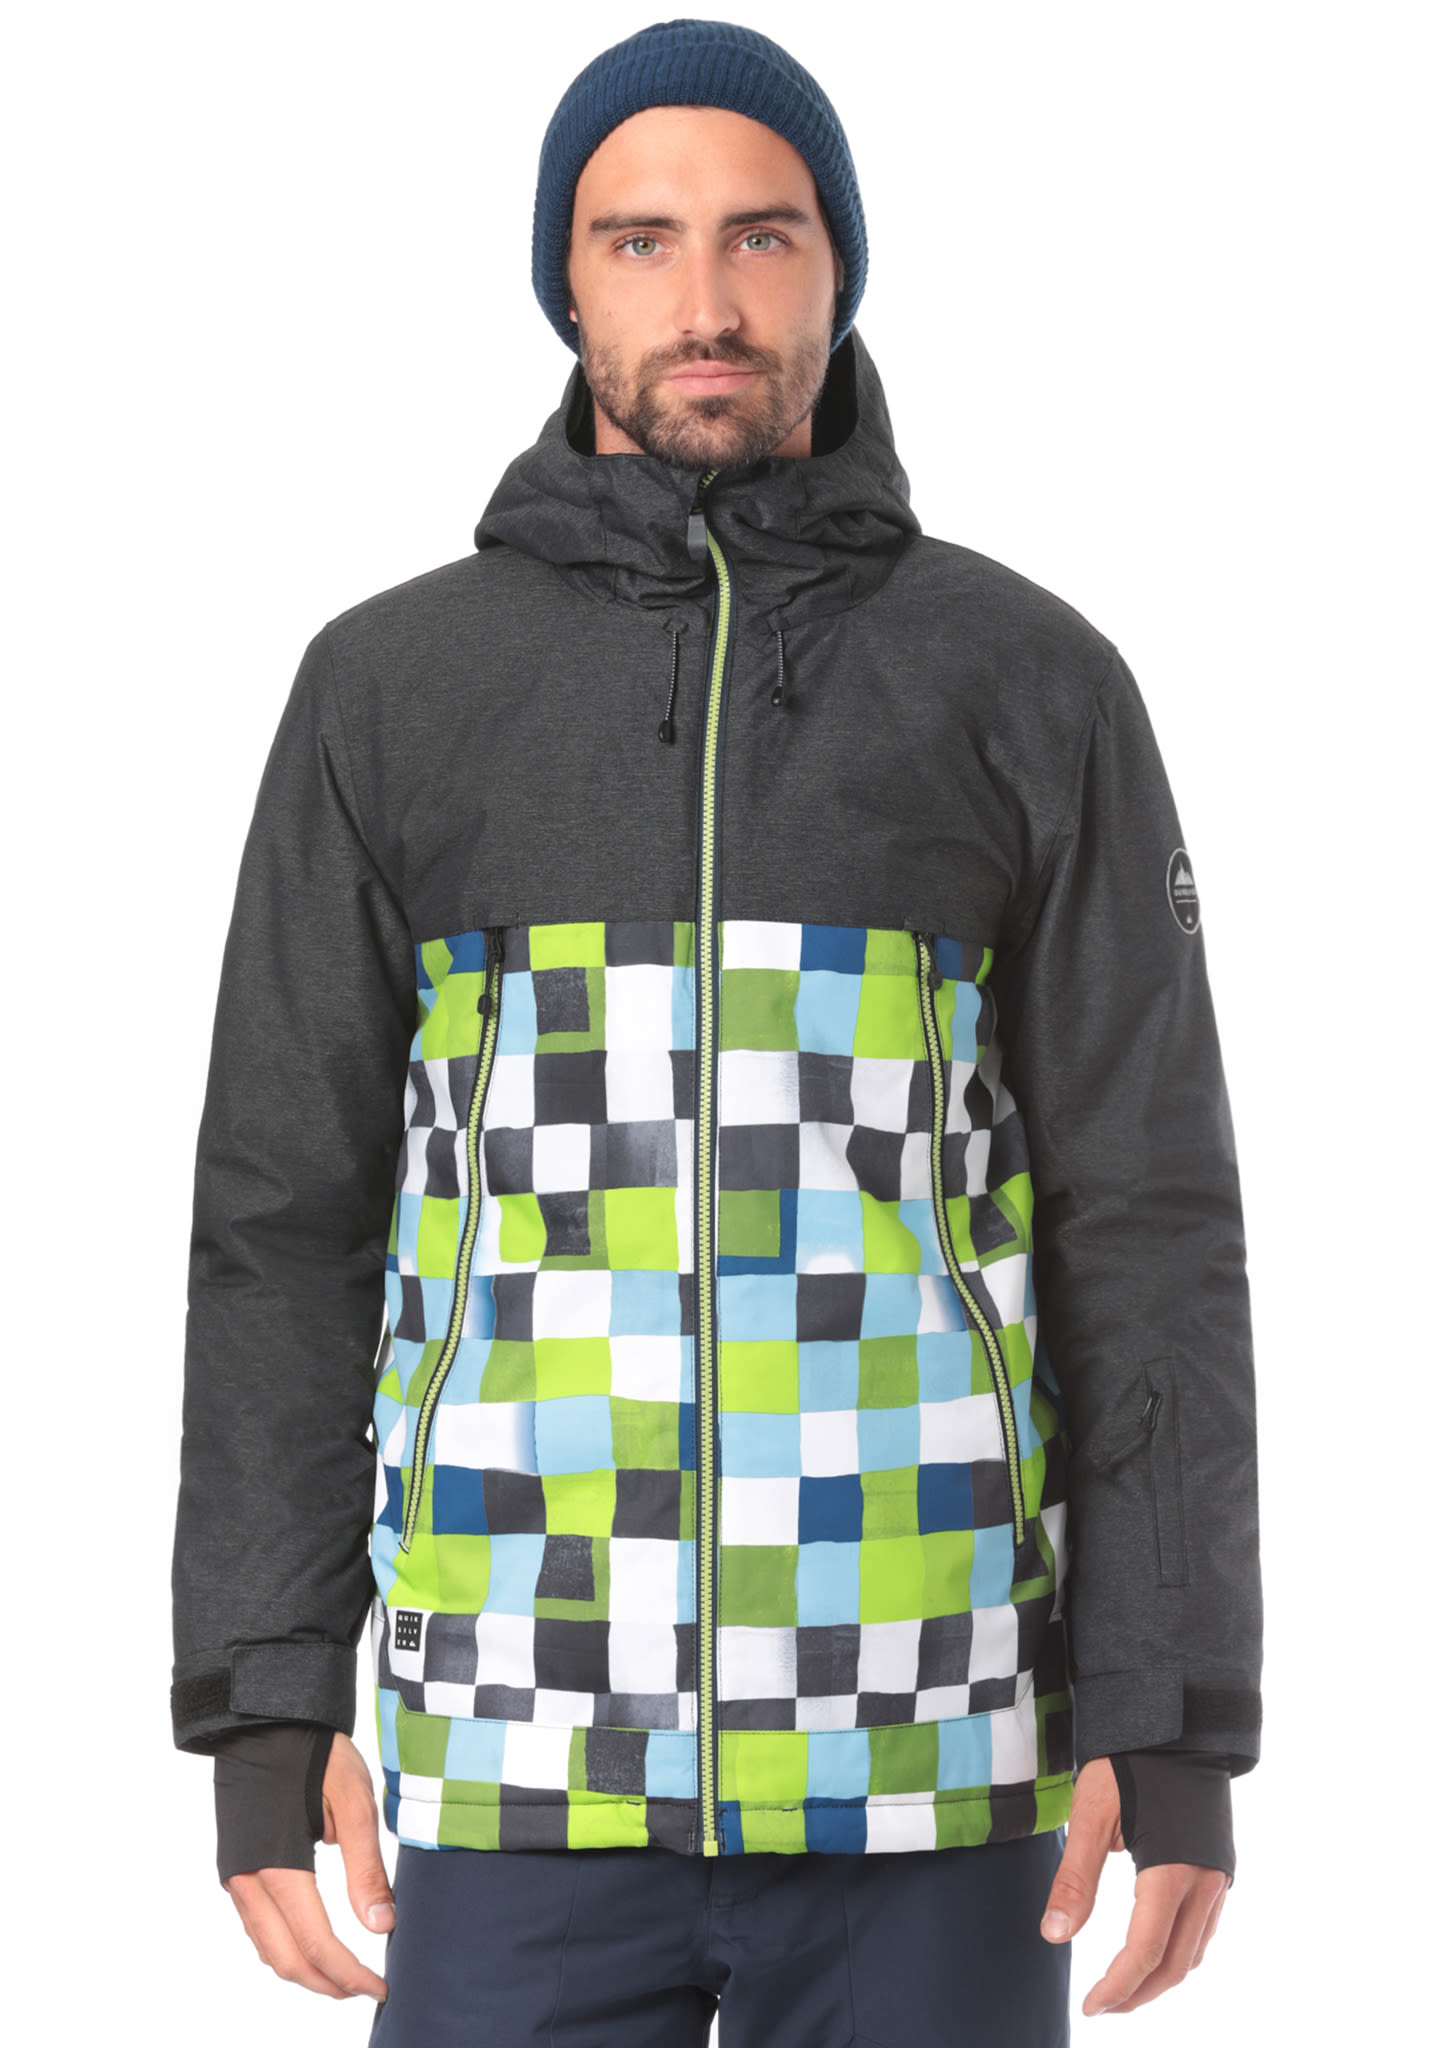 9d96641c3df Quiksilver Sierra - Snowboard Jacket for Men - Green - Planet Sports